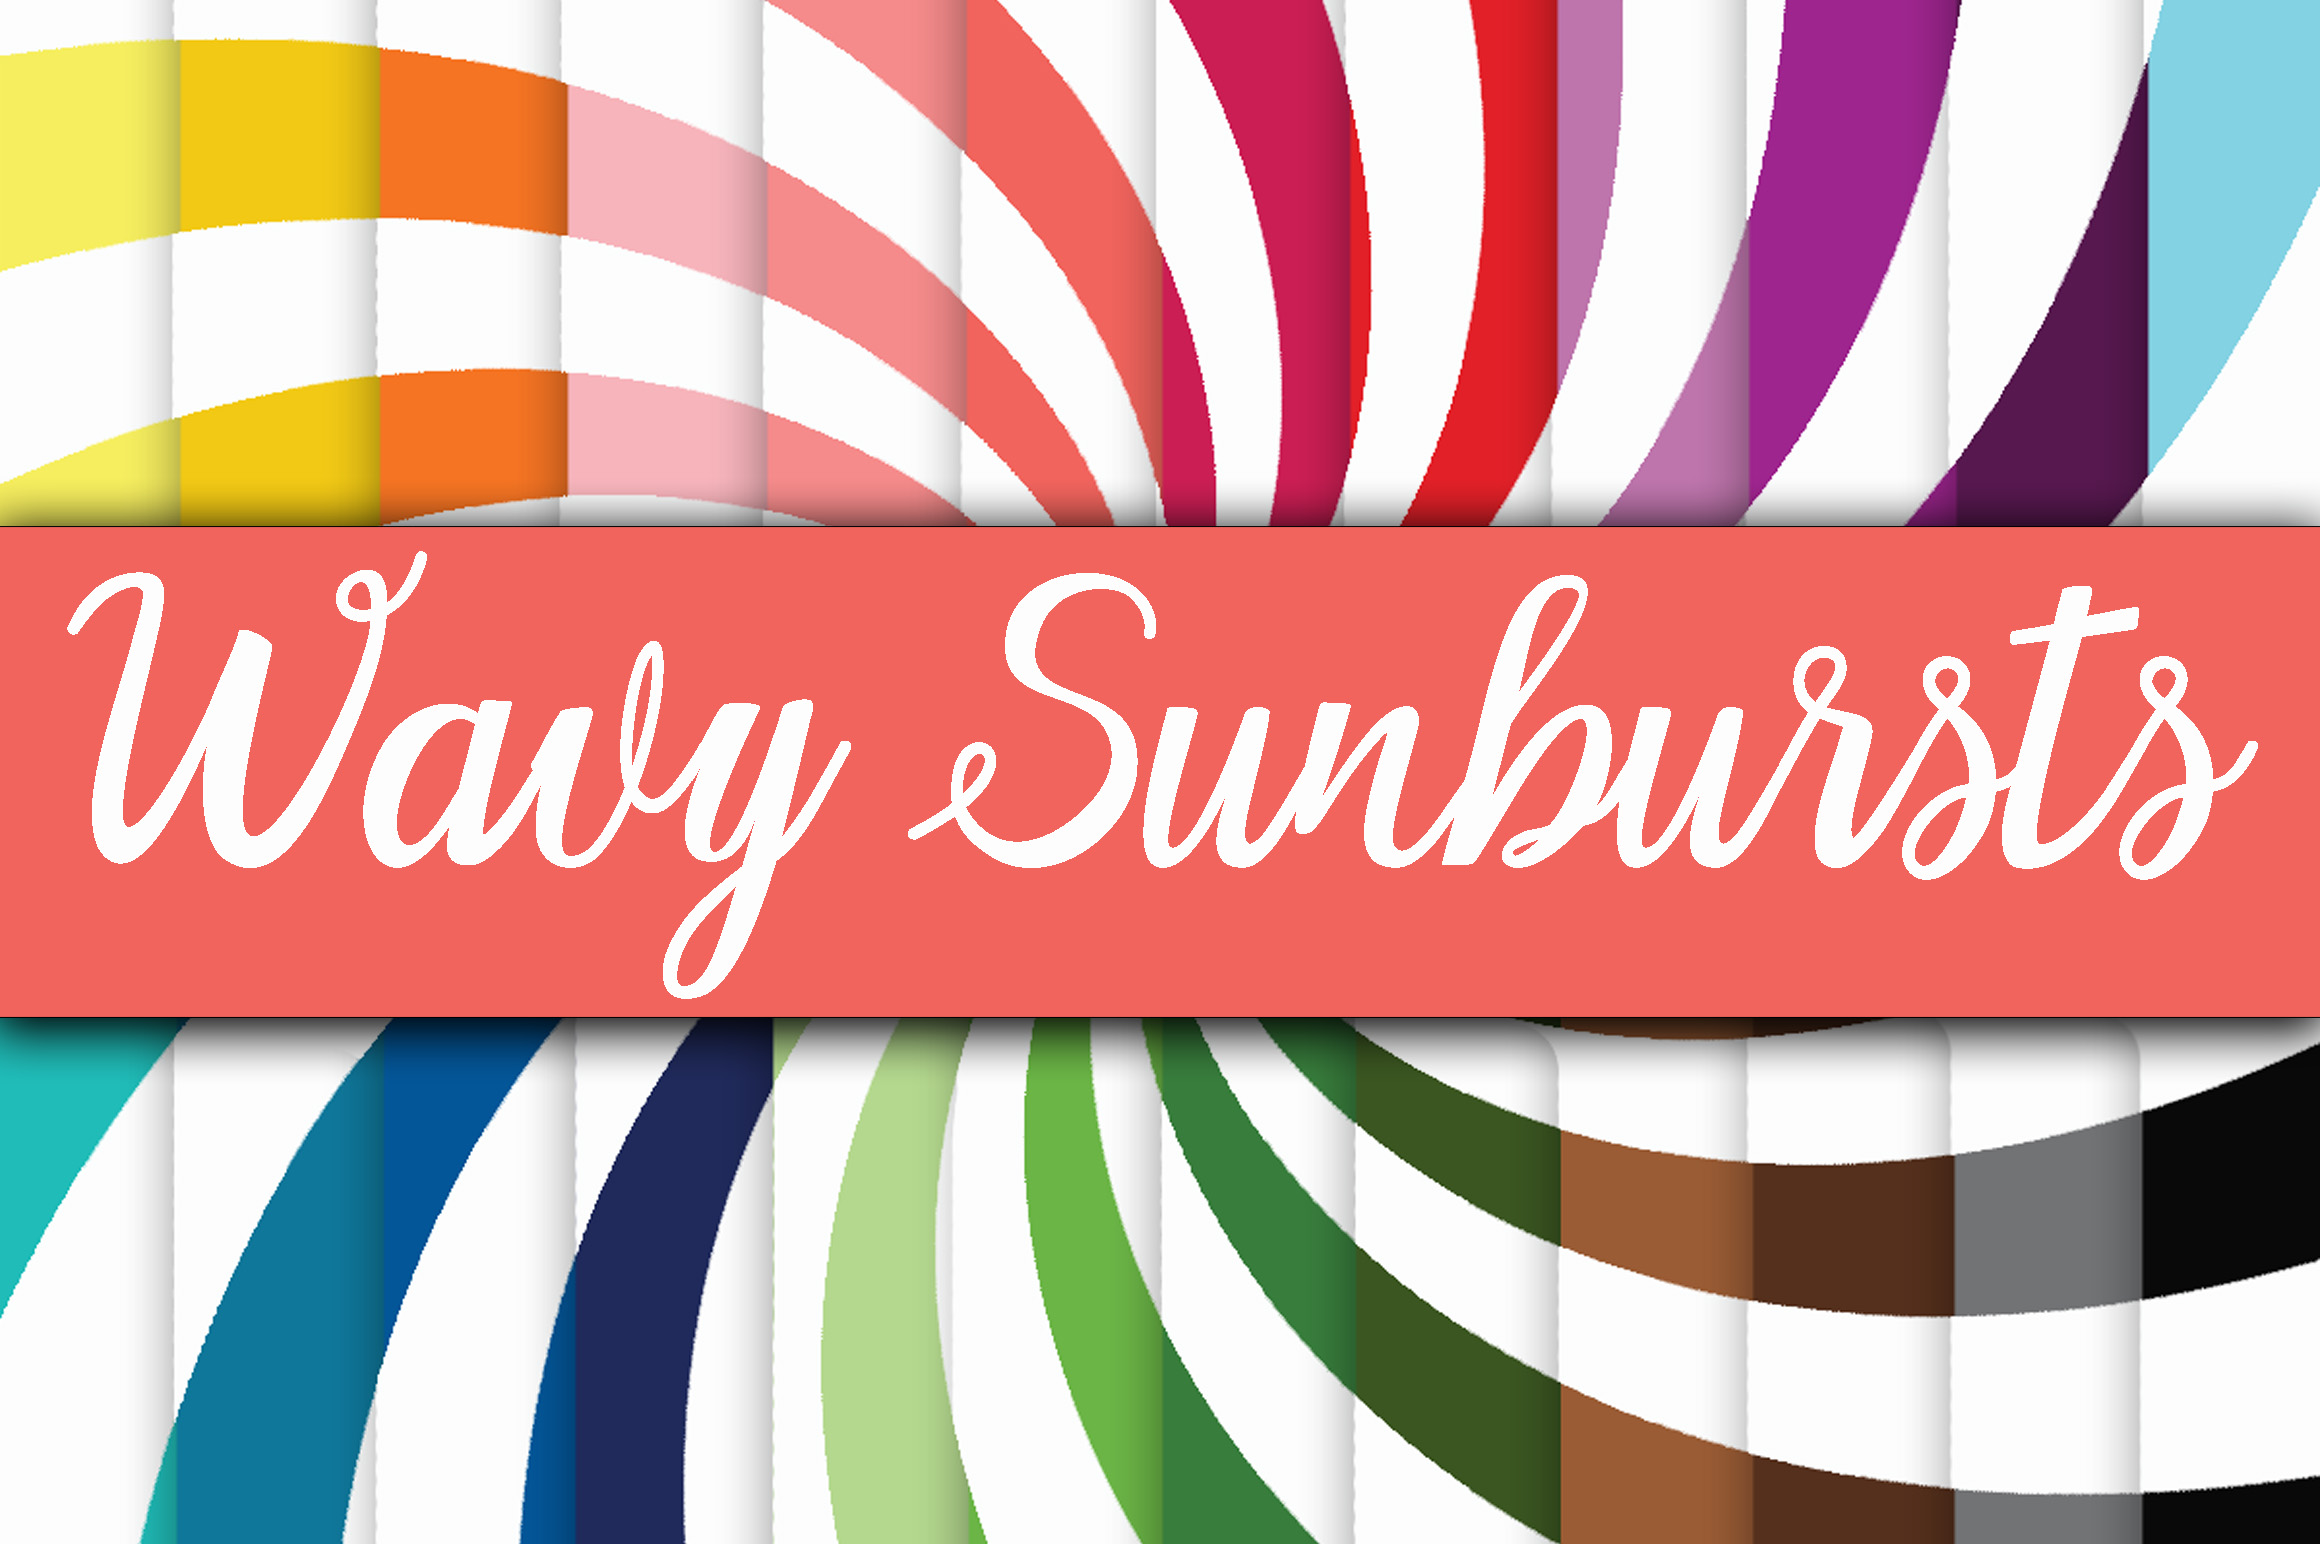 Wavy Sunbursts Digital Paper Graphic Backgrounds By oldmarketdesigns